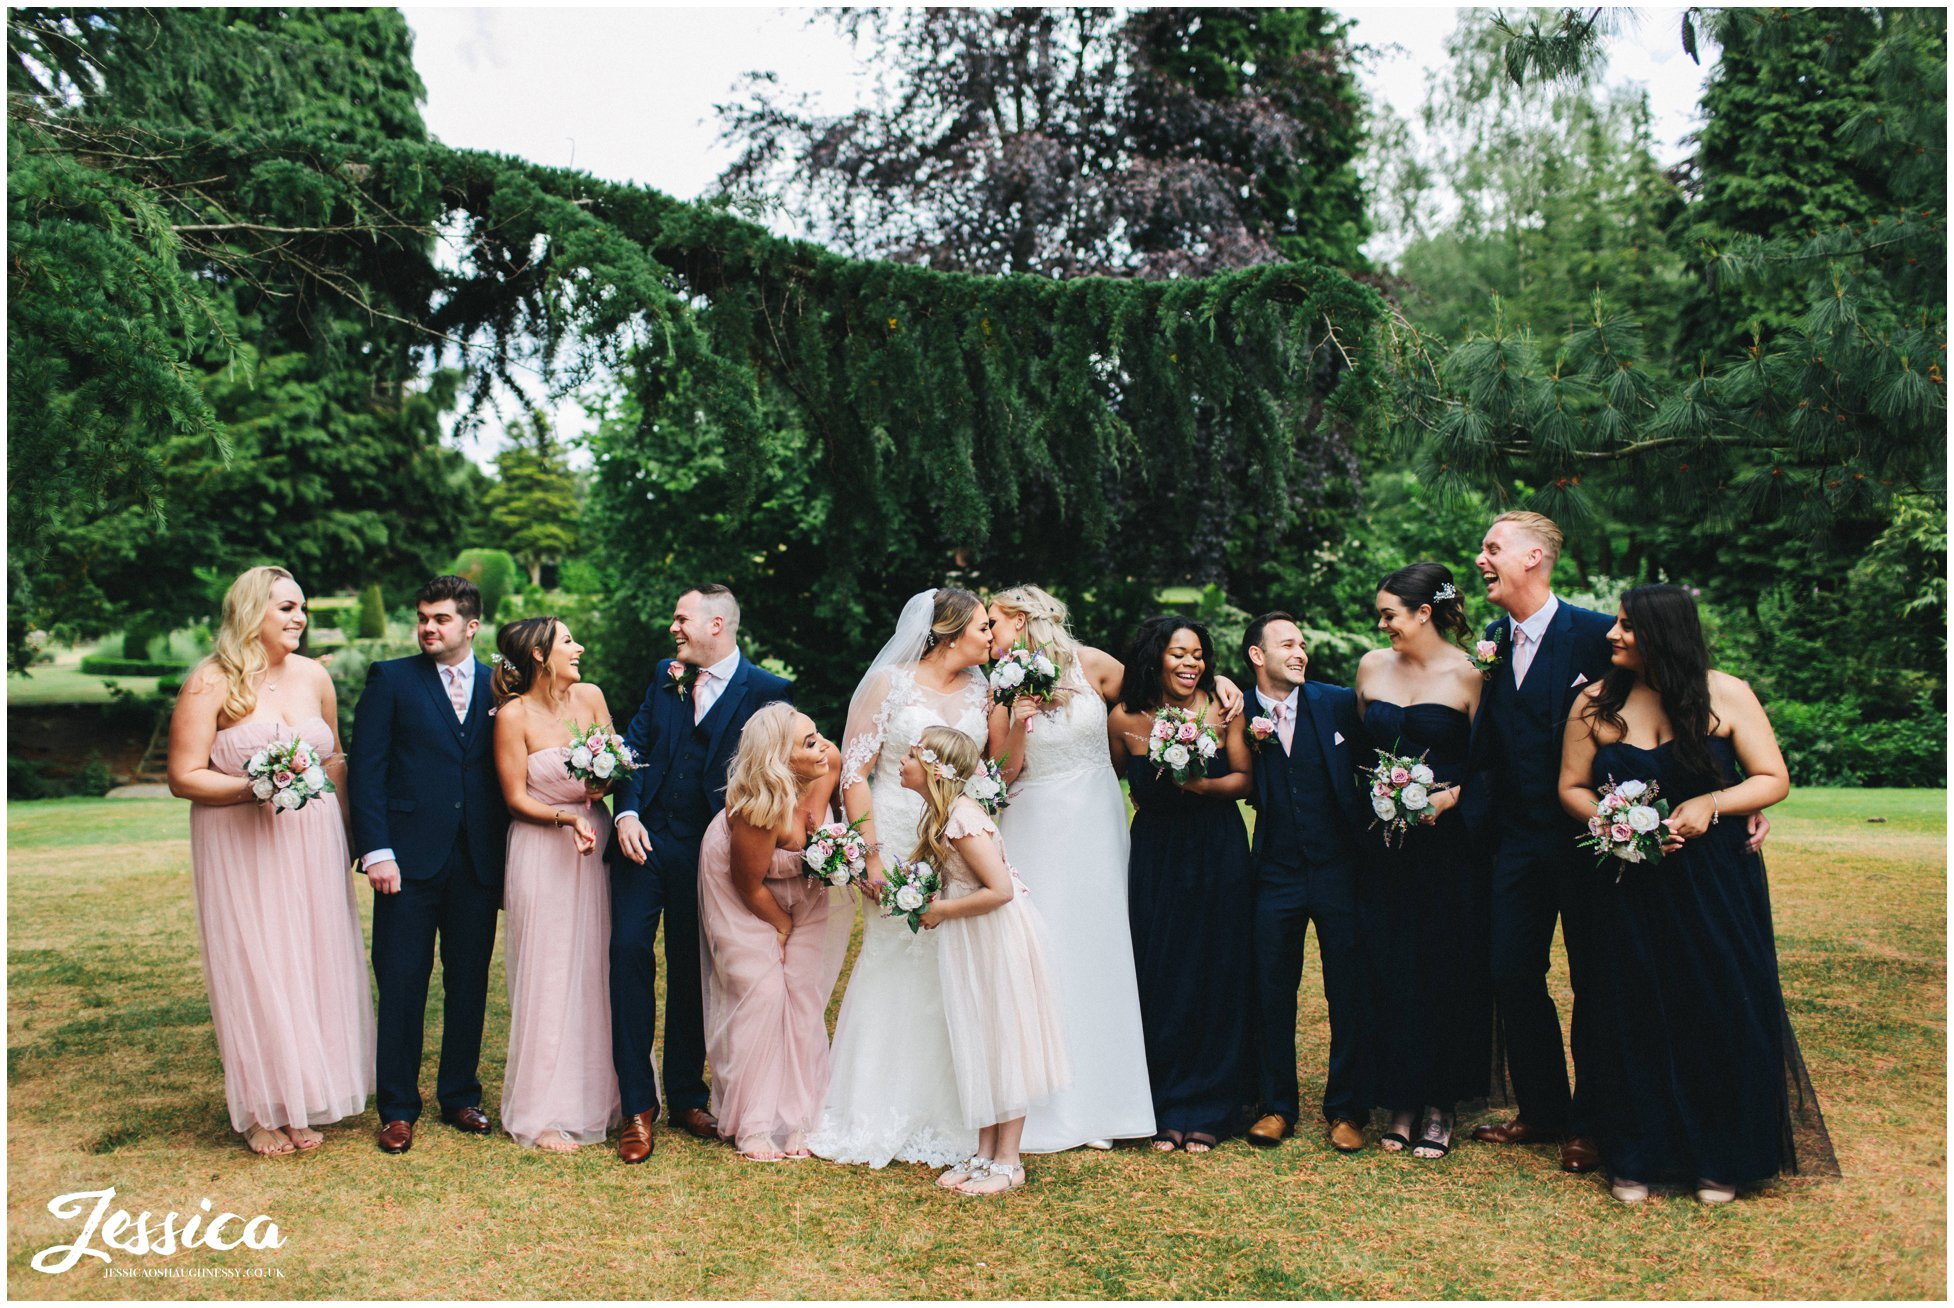 brides & their wedding party laugh together in the gardens